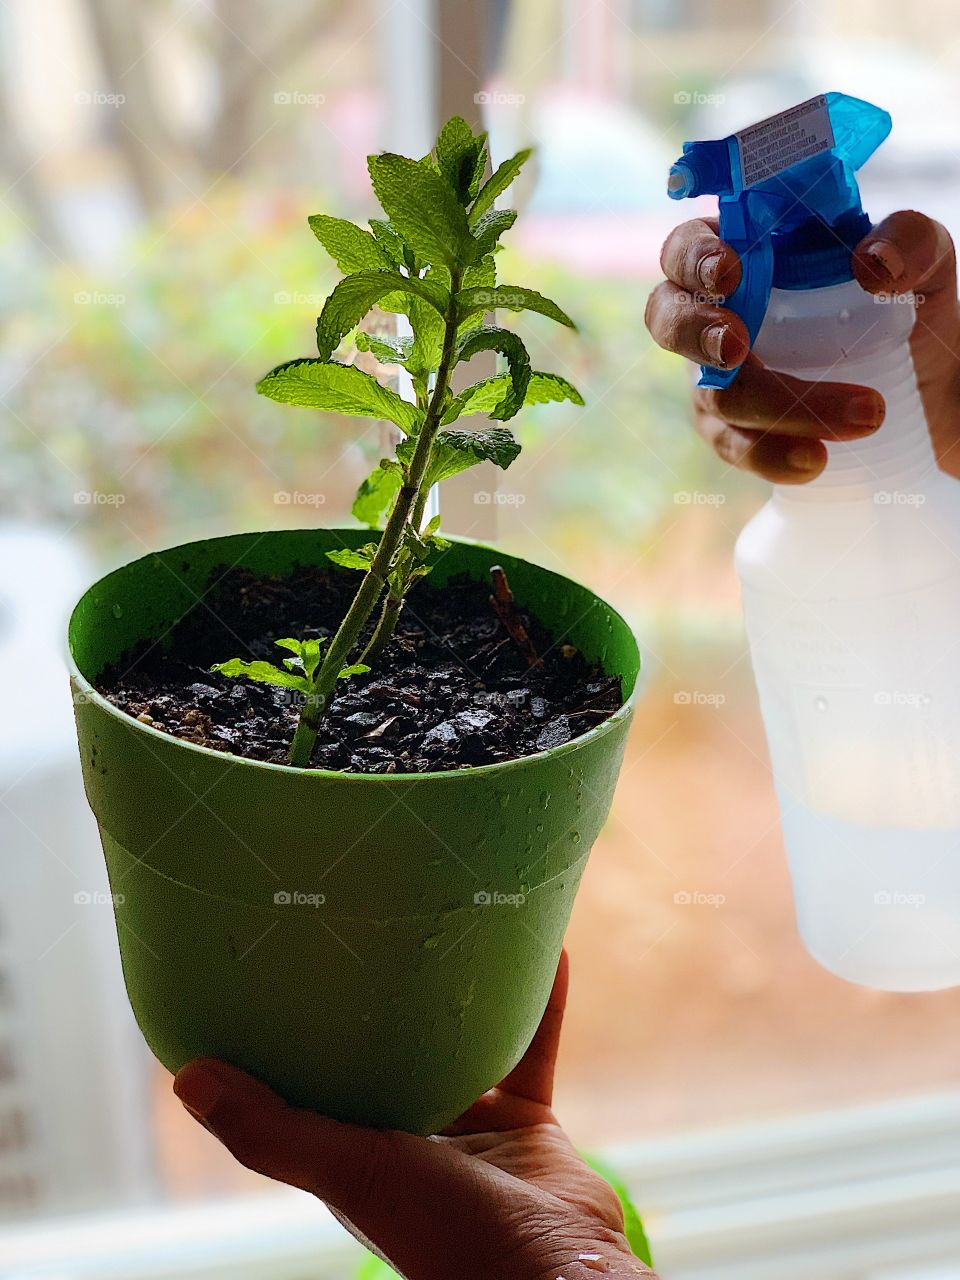 Plantation, pot, home plants, urban living, green, watering plants at home, kitchen garden, green plants in plots, sustainable life, renewable, sustainability